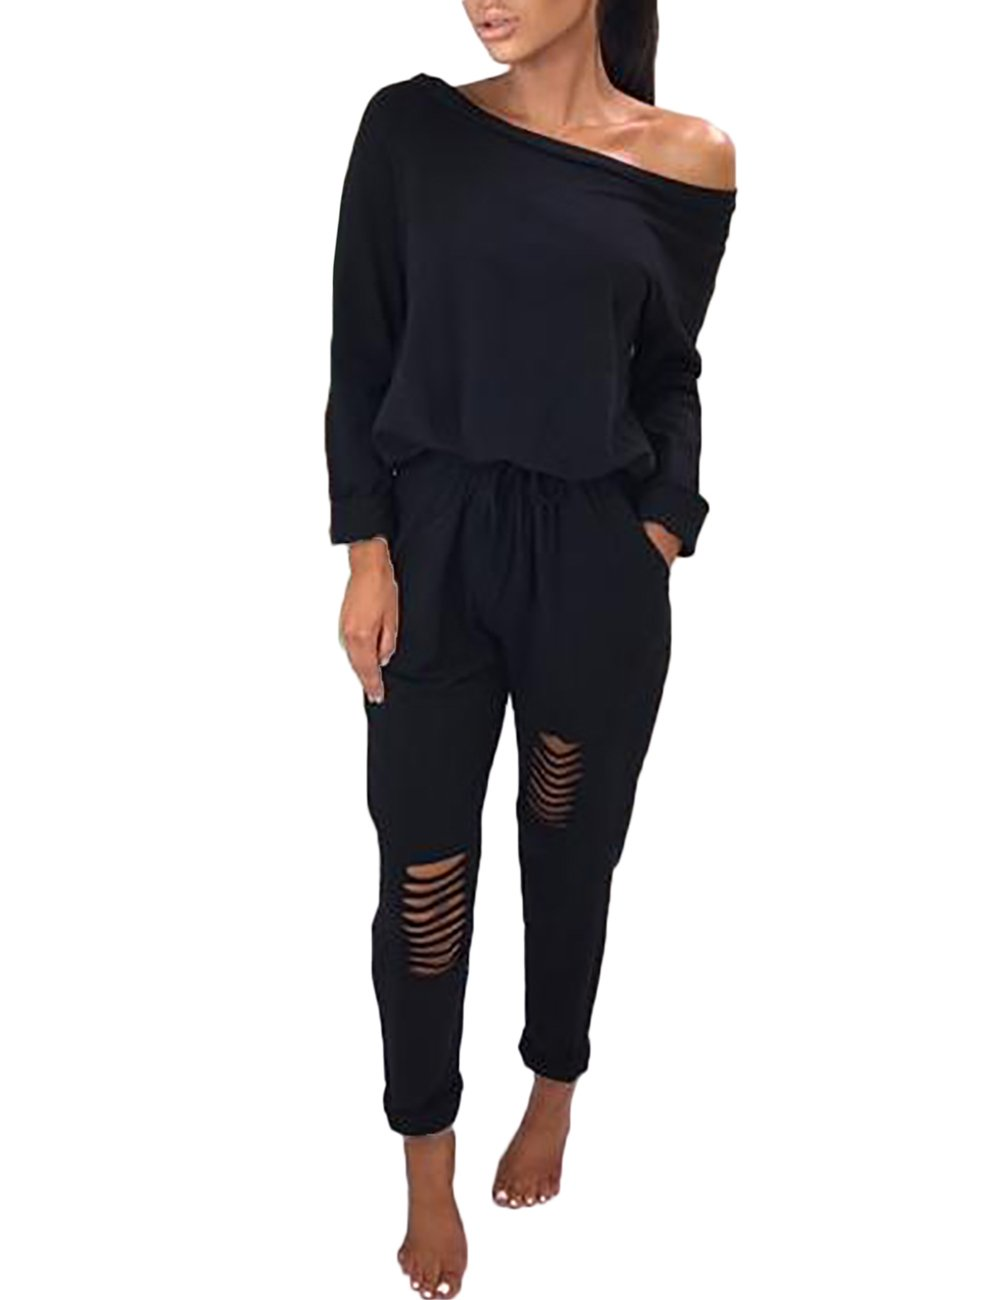 Ninimour Womens Casual One Off Shoulder Drawstring Top Ripped Pants Jumpsuits,Black,Small